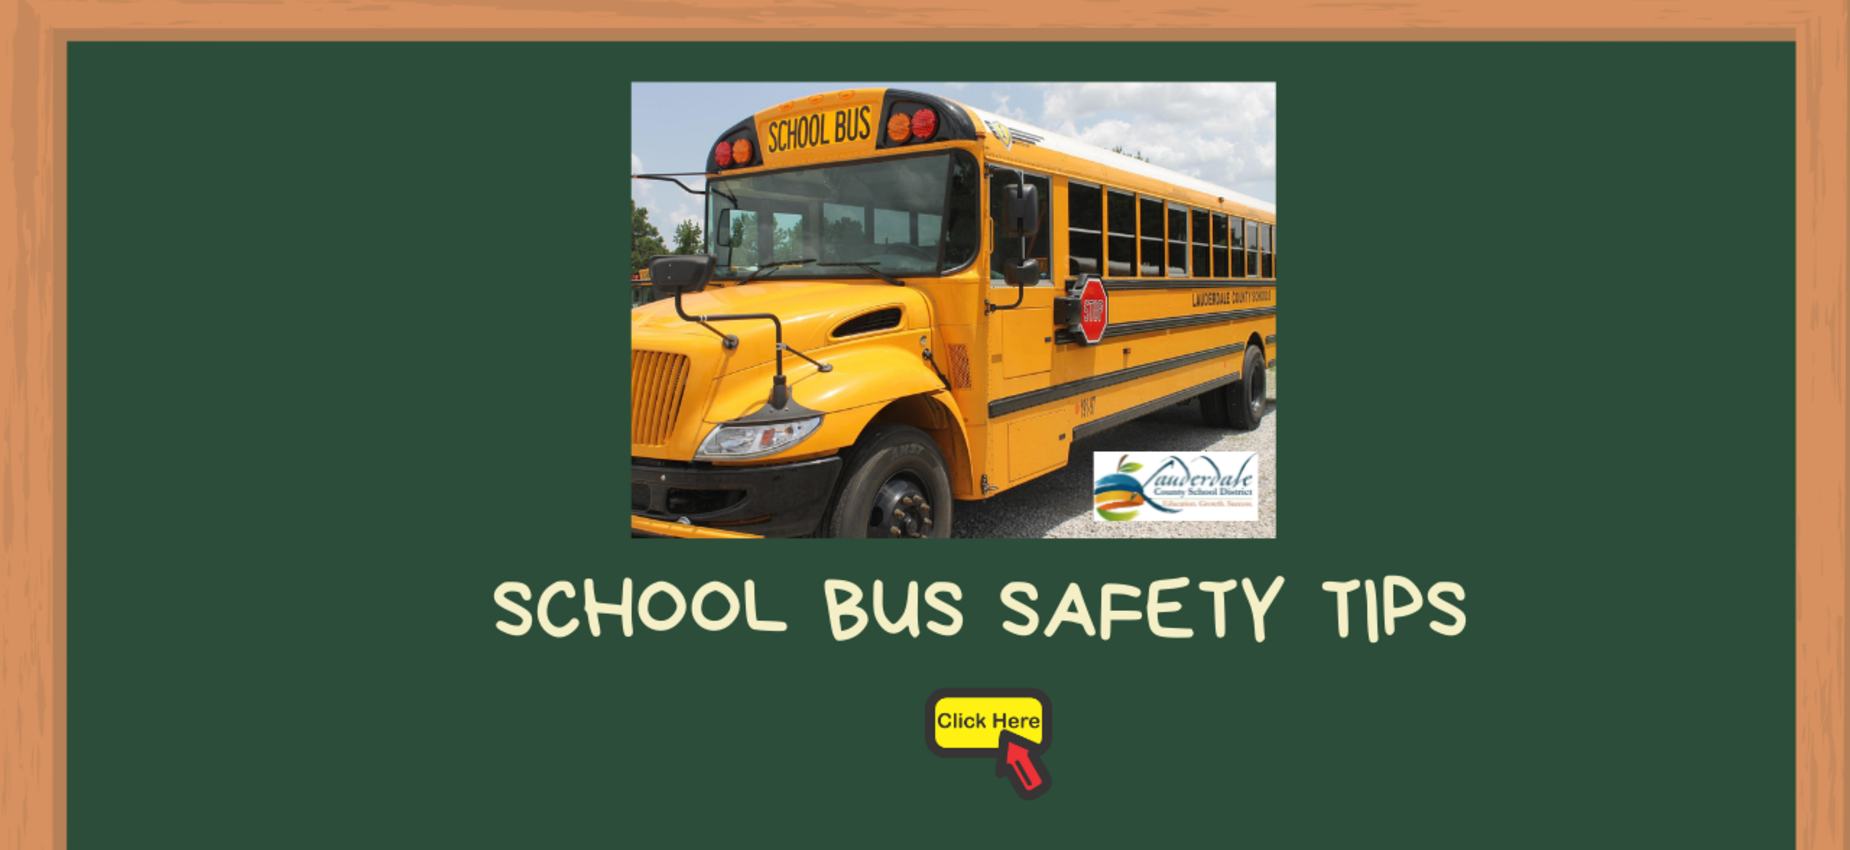 School Bus Safety Tips Graphic